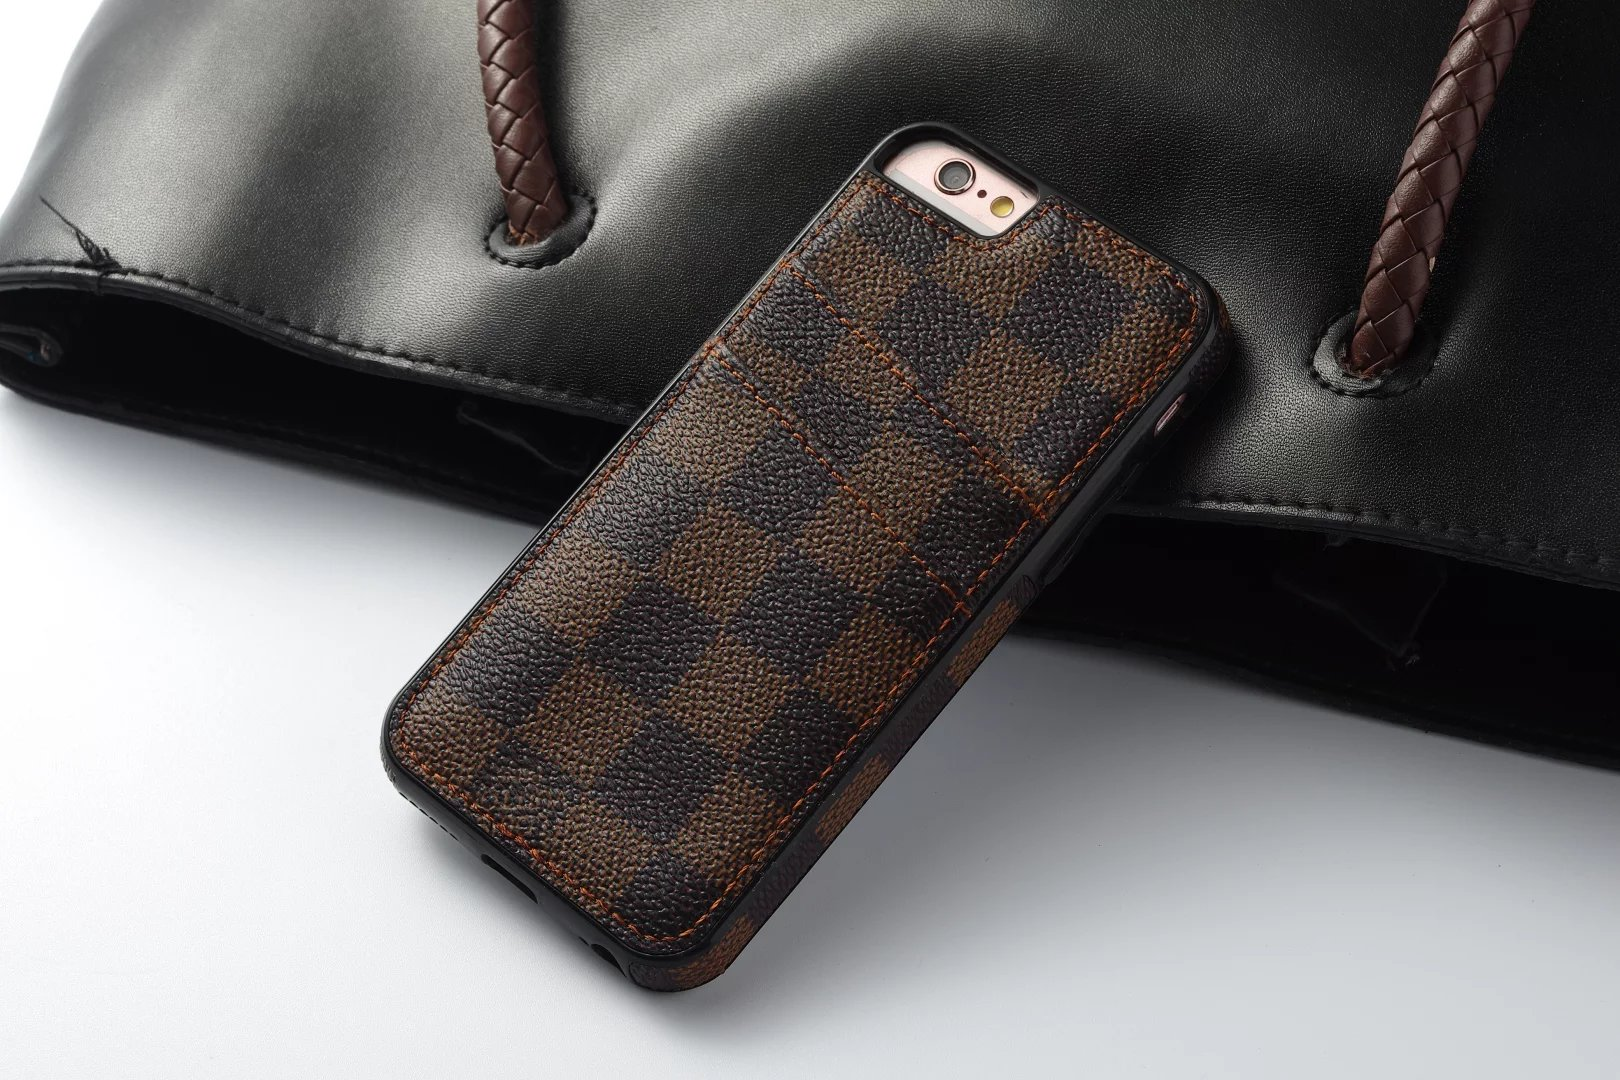 iphone filzhülle original iphone hülle Louis Vuitton iphone7 Plus hülle iphone 7 Plus lederhülle apple handy hülle silikon iphone etuis iphone 7 Plus hülle durchsichtig iphone 7 Plus zoll hülle für iphone 7 Plus